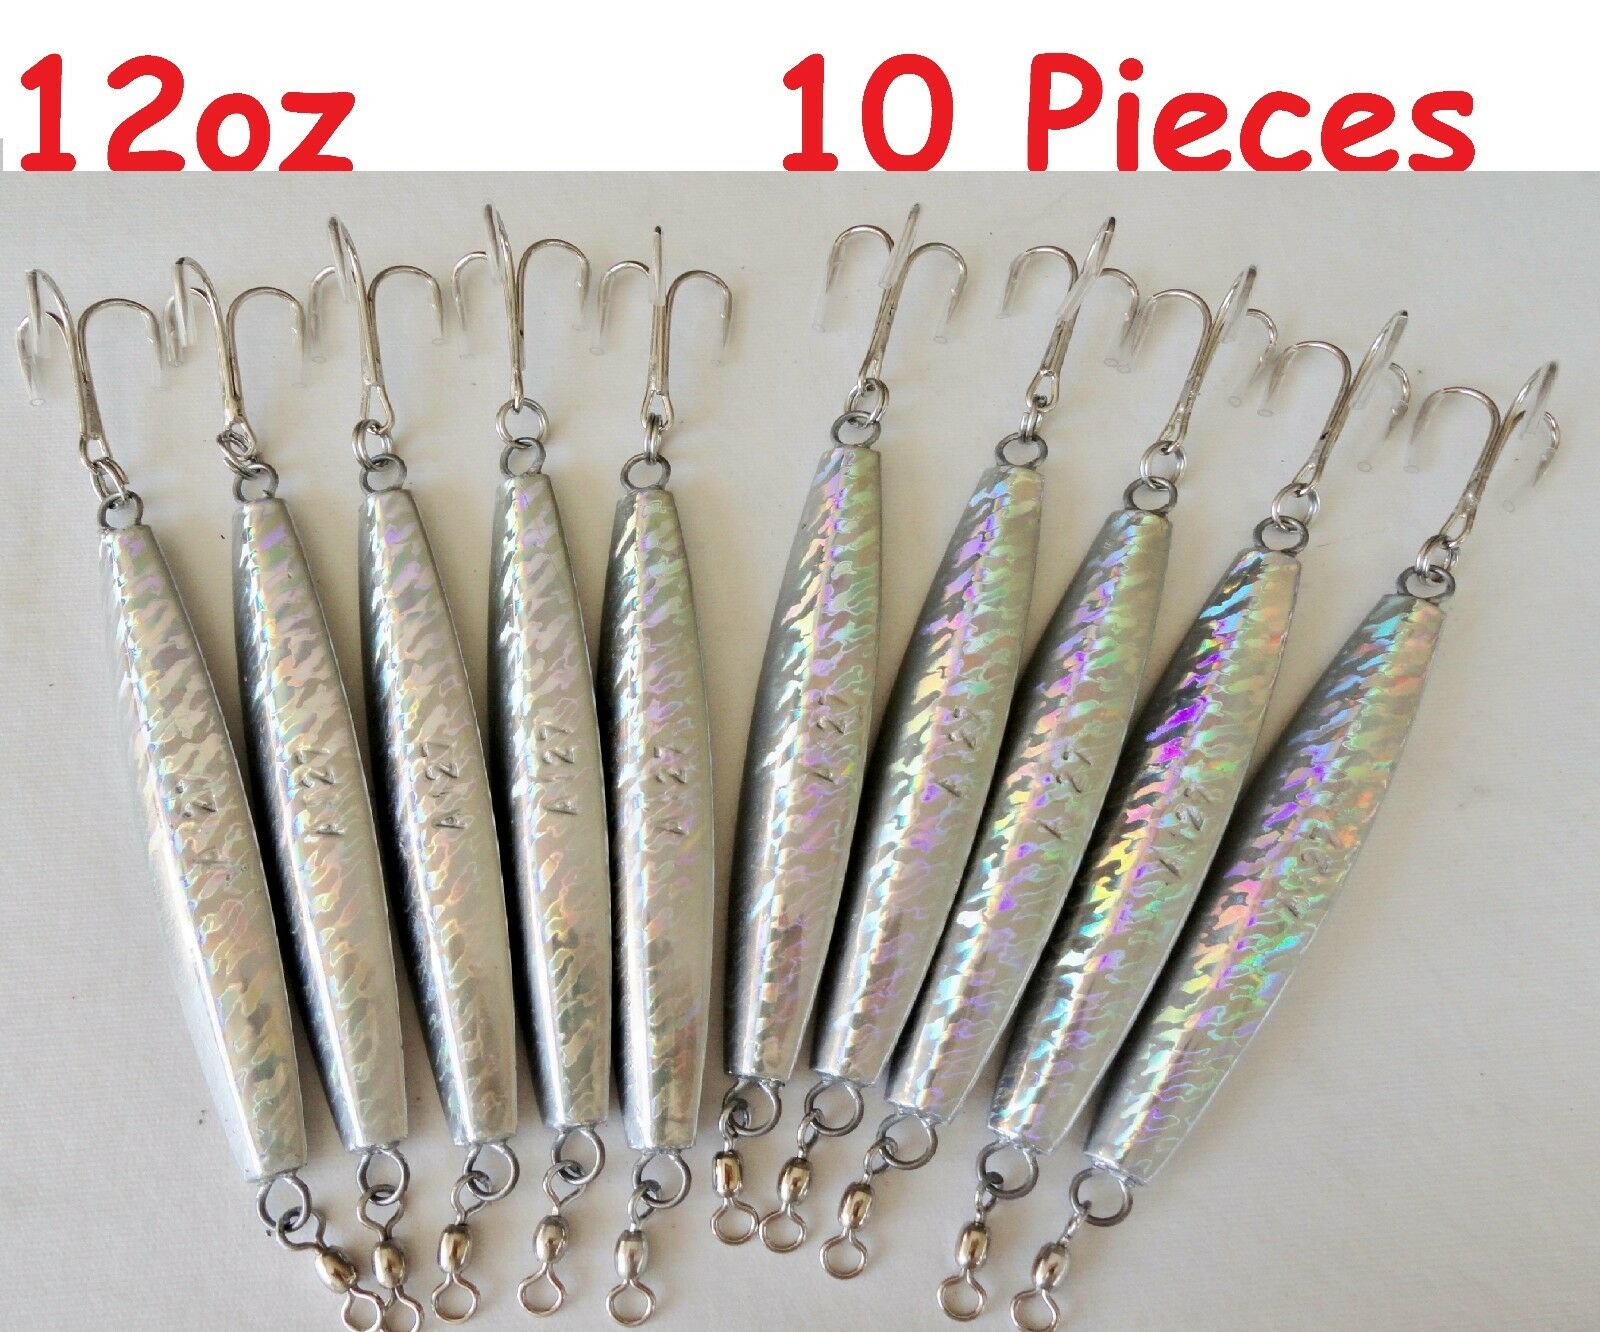 10 Pieces 12oz Diamond Jigs Holographic Saltwater  Fishing Lures  enjoy saving 30-50% off